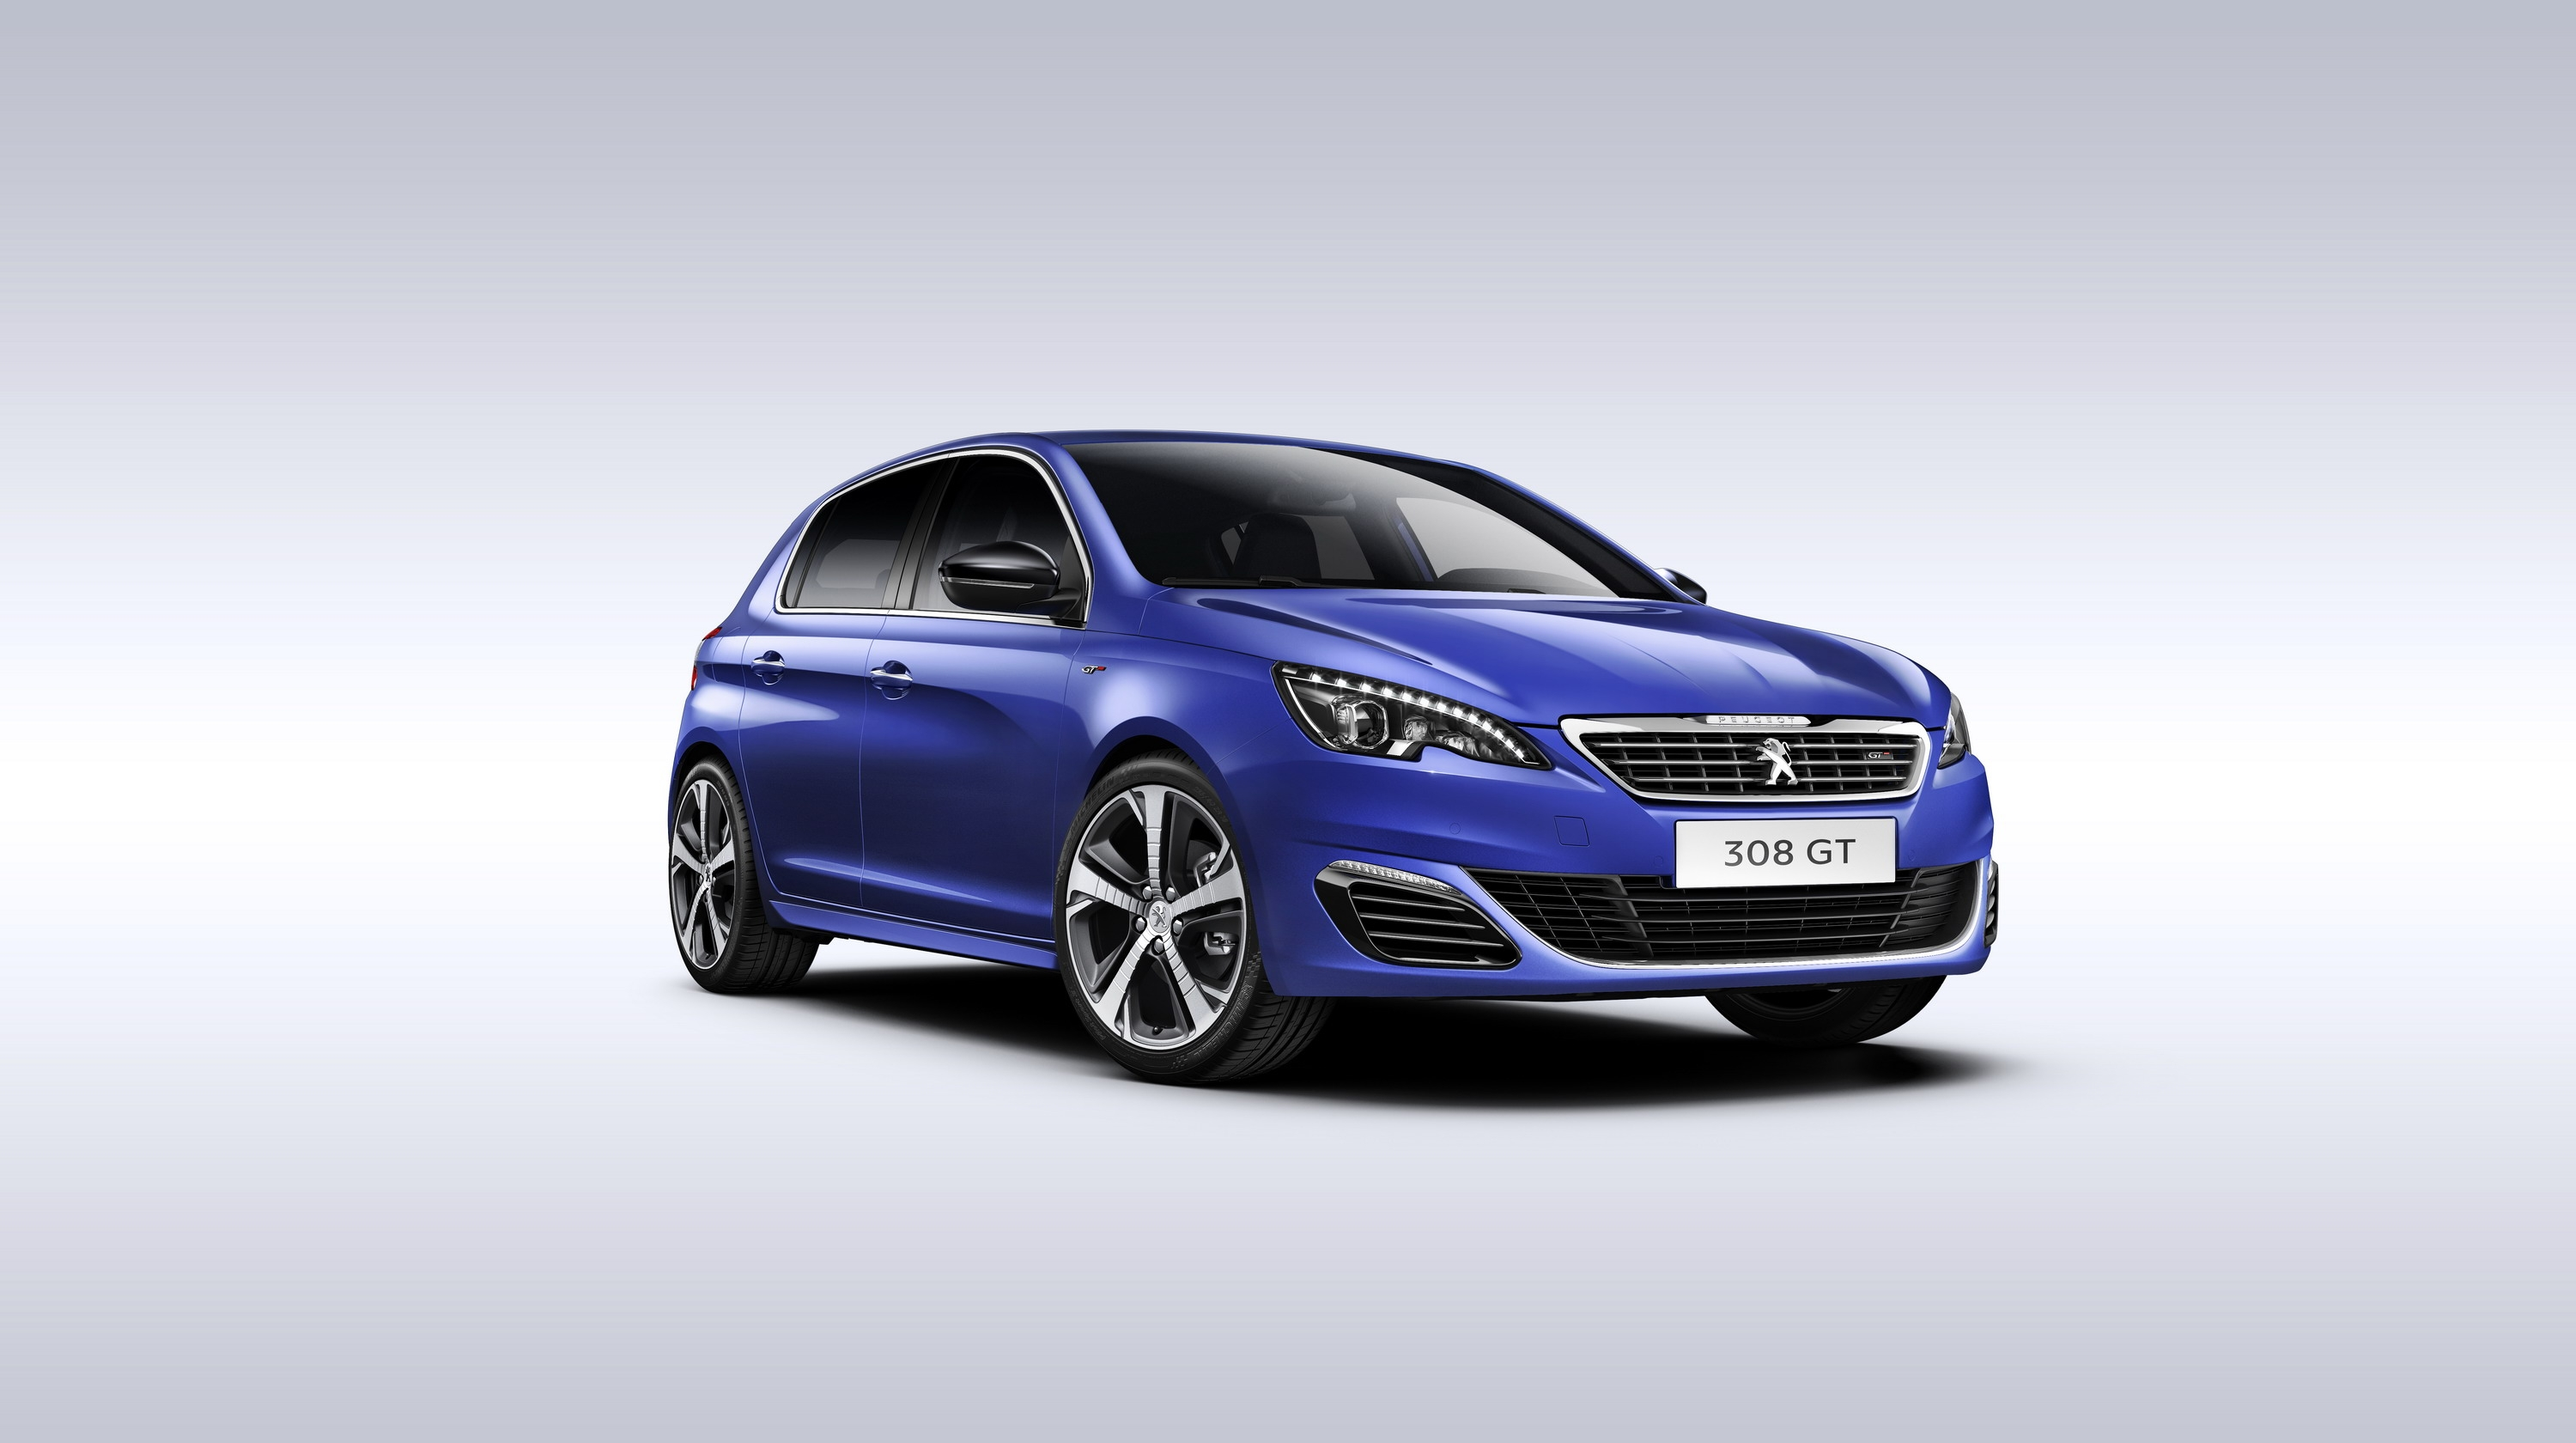 2015 peugeot 308 gt review gallery top speed. Black Bedroom Furniture Sets. Home Design Ideas